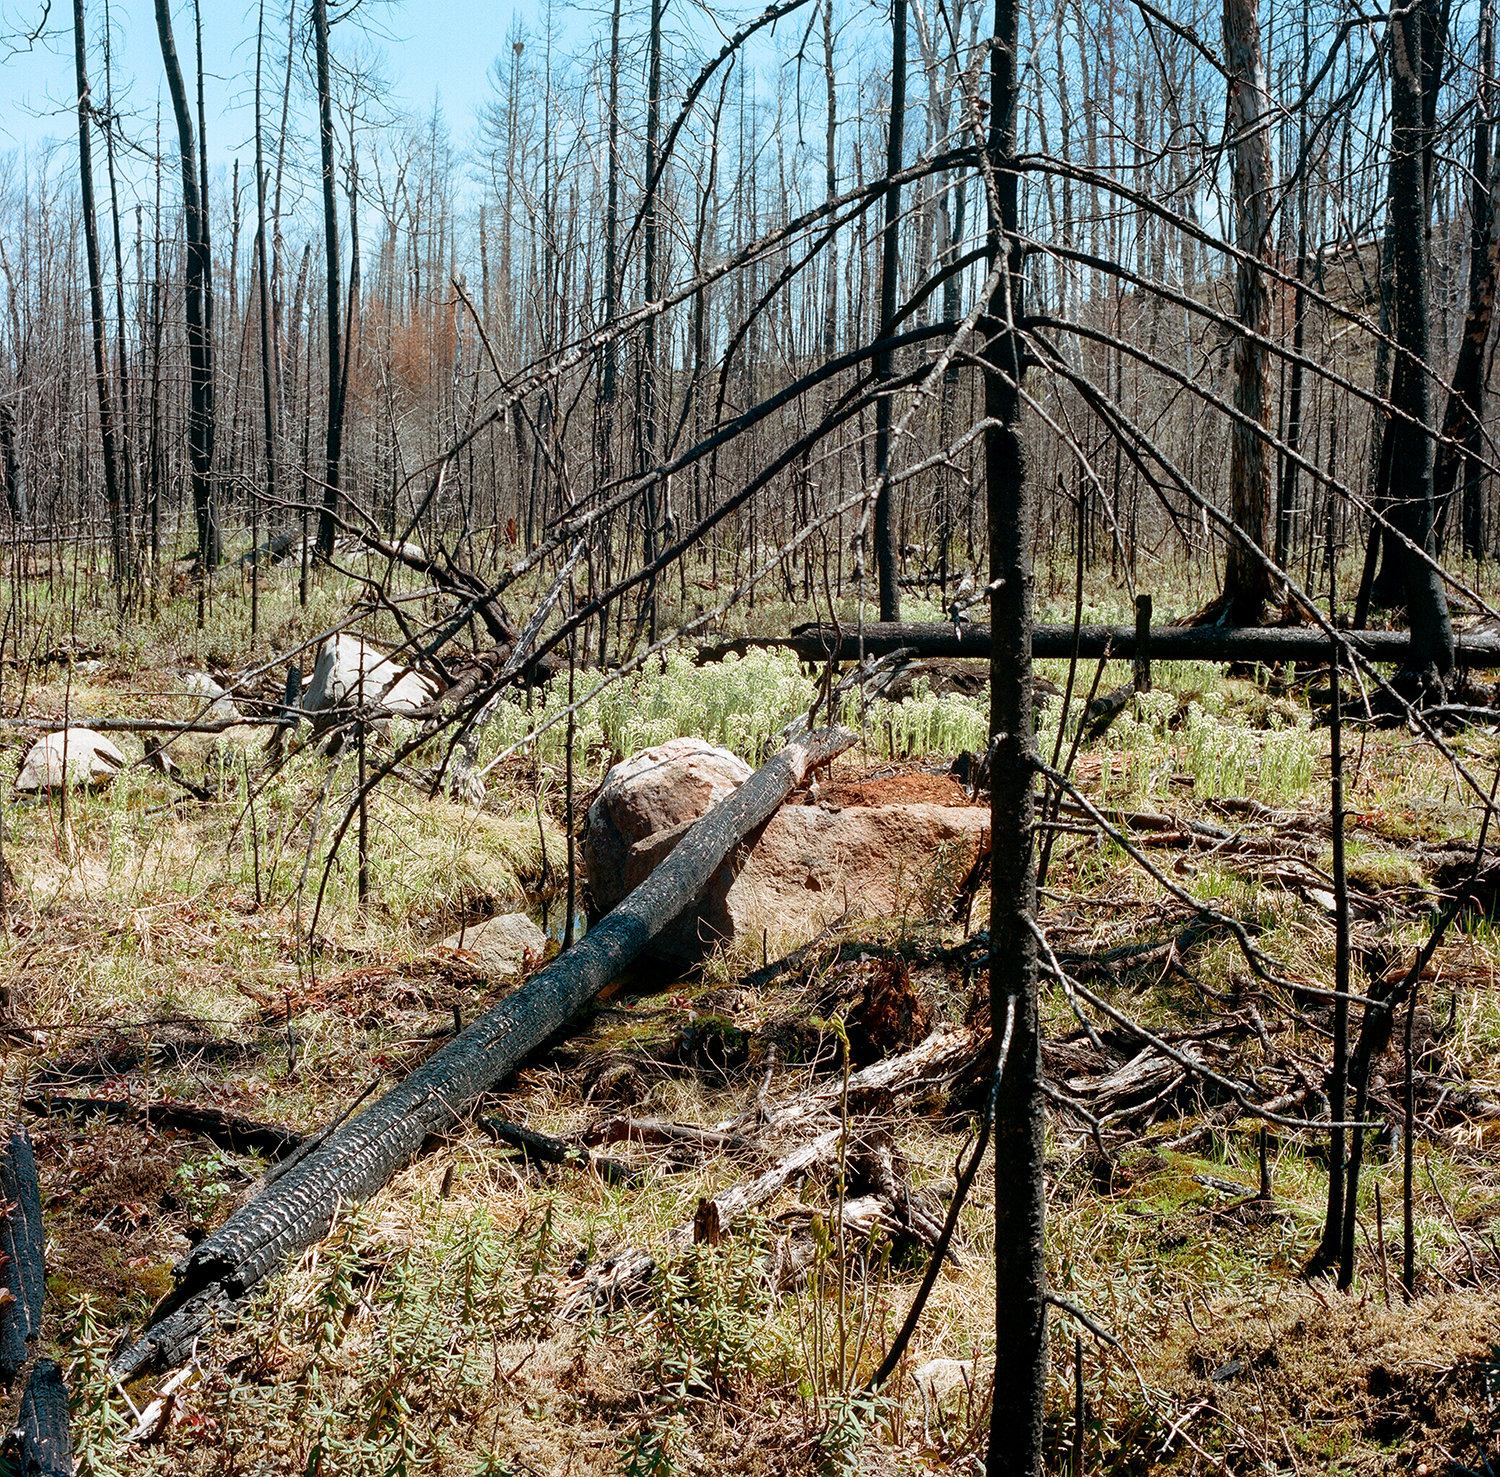 Burned Poor Conifer Swamp with Sweet Coltsfoot blooms